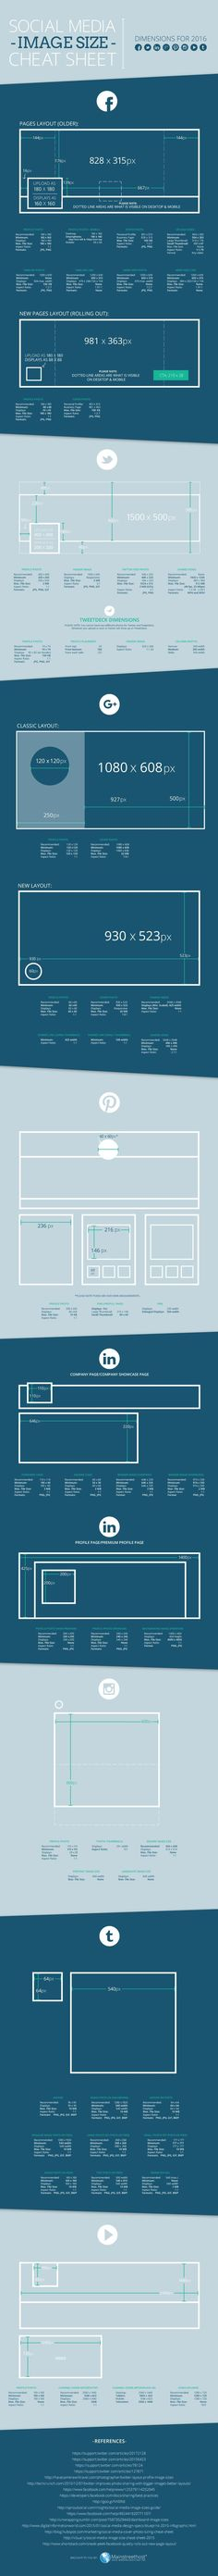 2016 Social Media Image Sizes Cheat Sheet Infographic